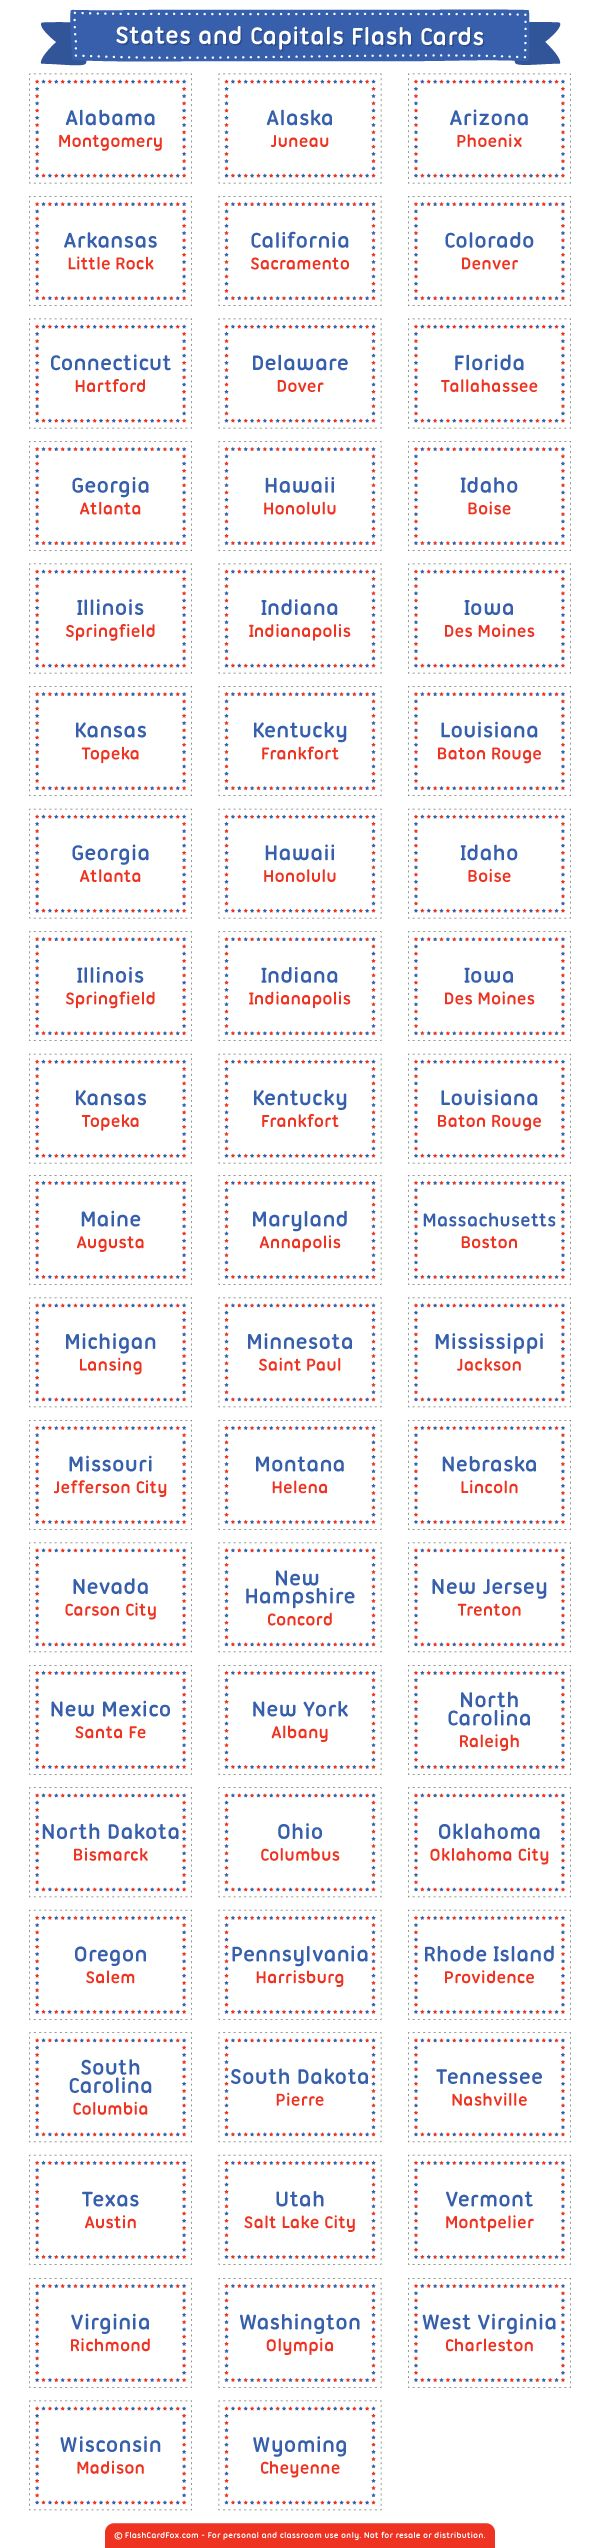 worksheet States And Capitals Worksheet 78 ideas about states and capitals on pinterest river usland free printable flash cards download them in pdf format at http